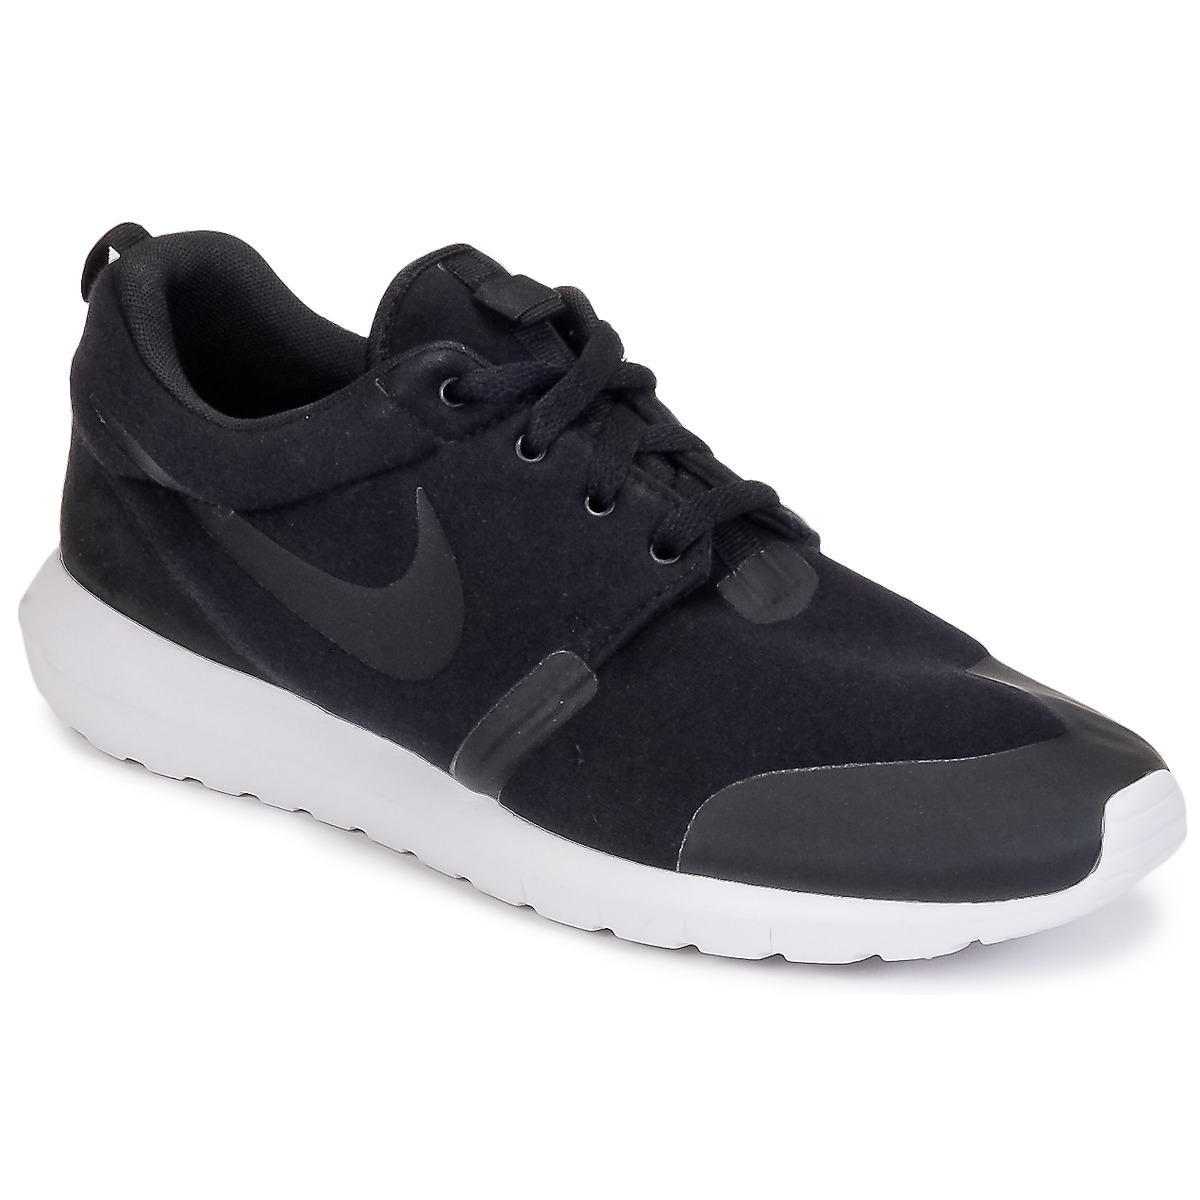 5f359160cc131 70%OFF Nike ROSHE RUN Black Shoes Low top trainers Men - s132716079 ...